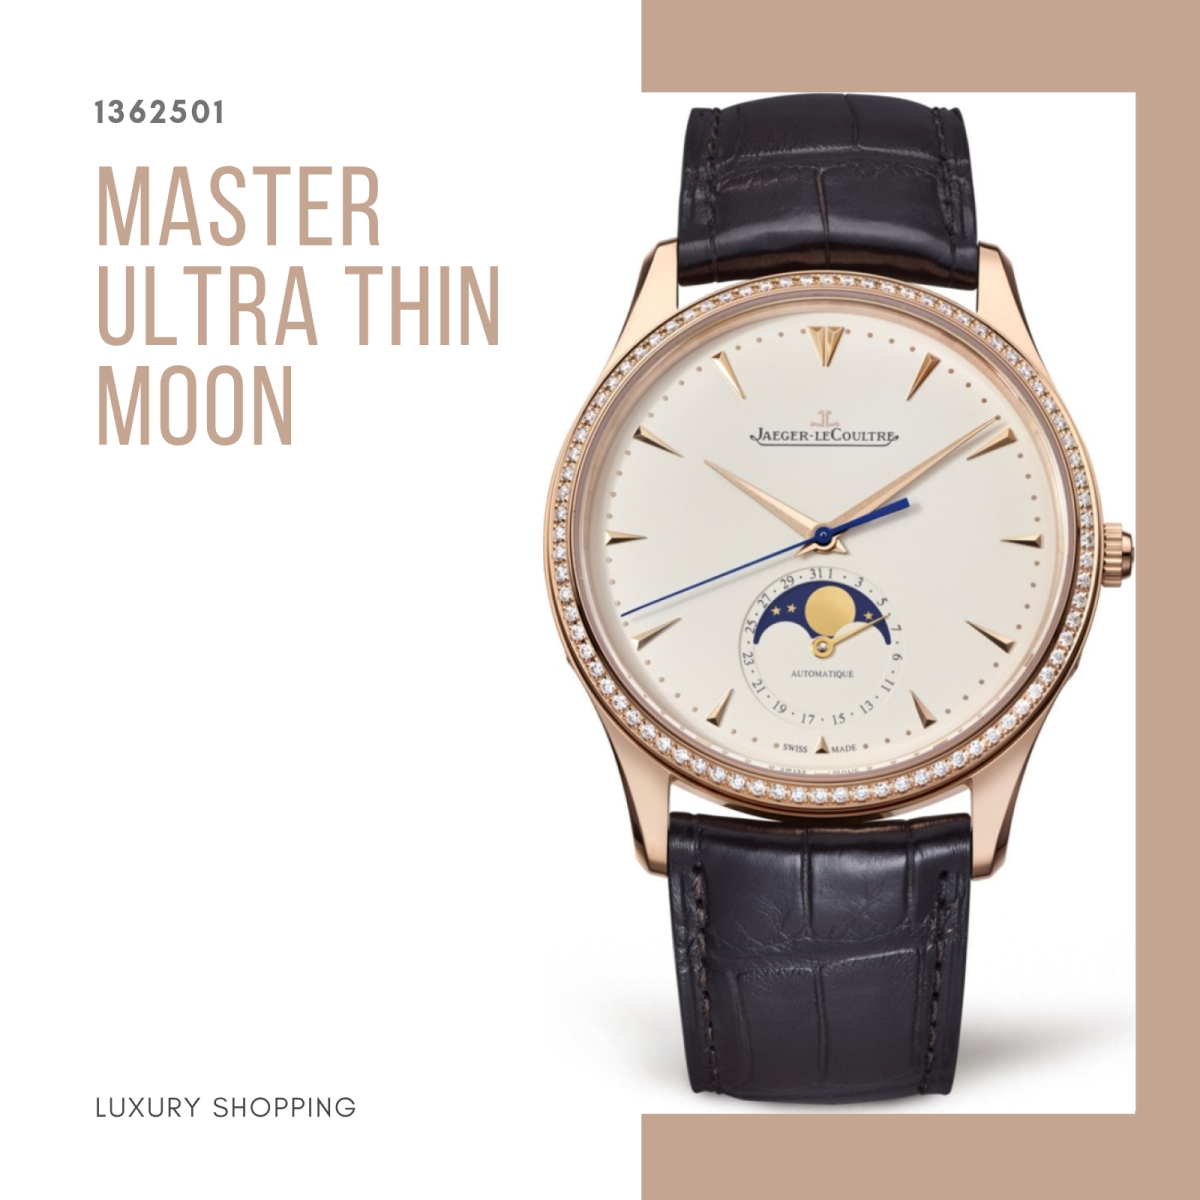 đồng hồ nam Jaeger-LeCoultre 1362501 Ultra Thin Moon